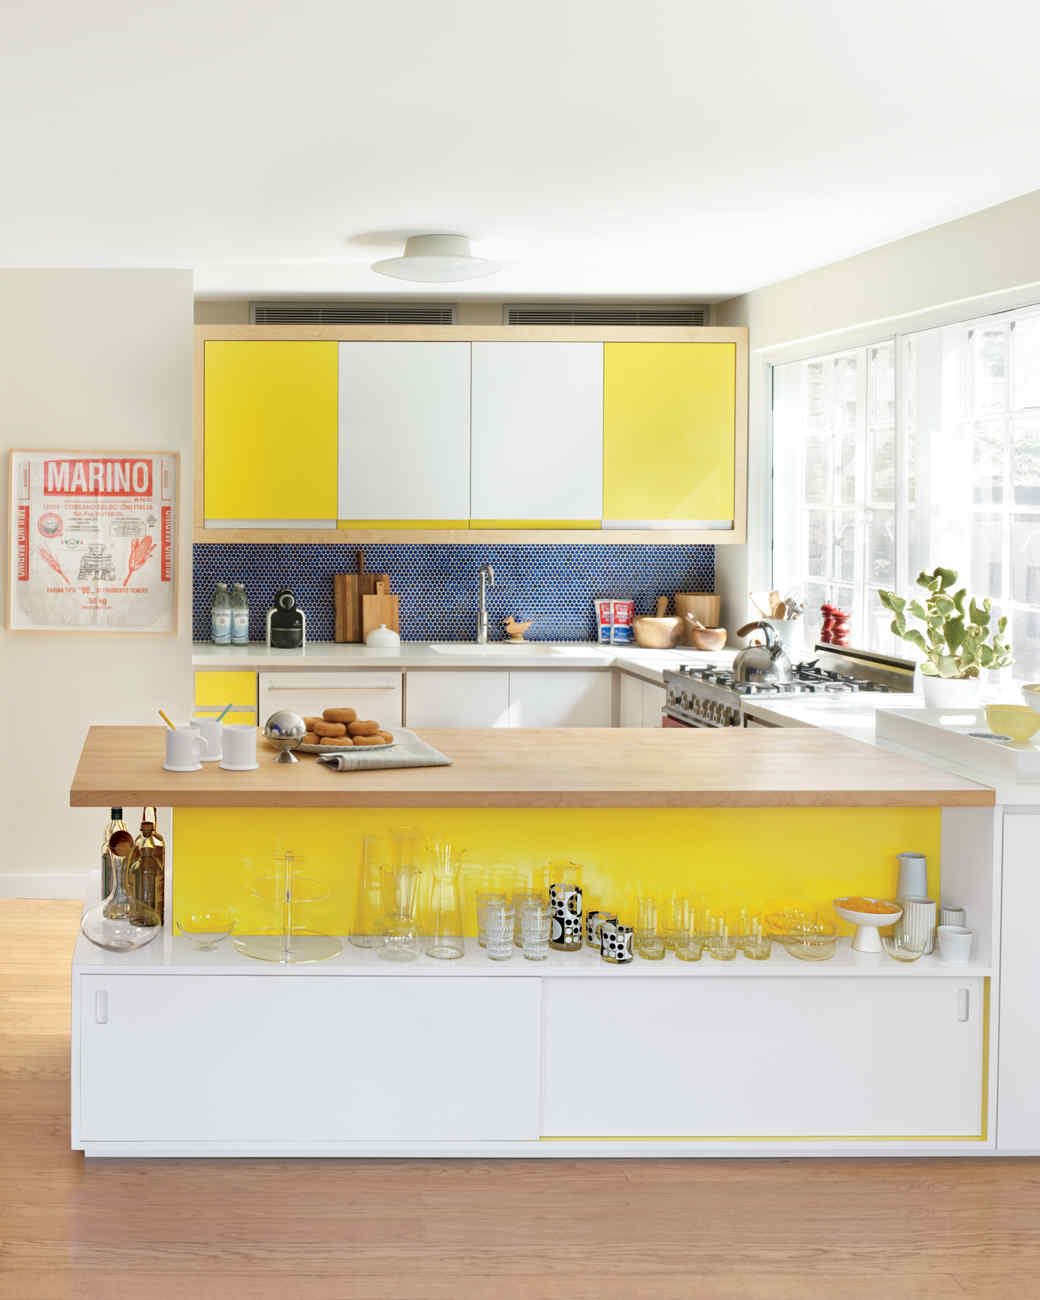 annie-schlechter-kitchen-bold-color-mld107949.jpg